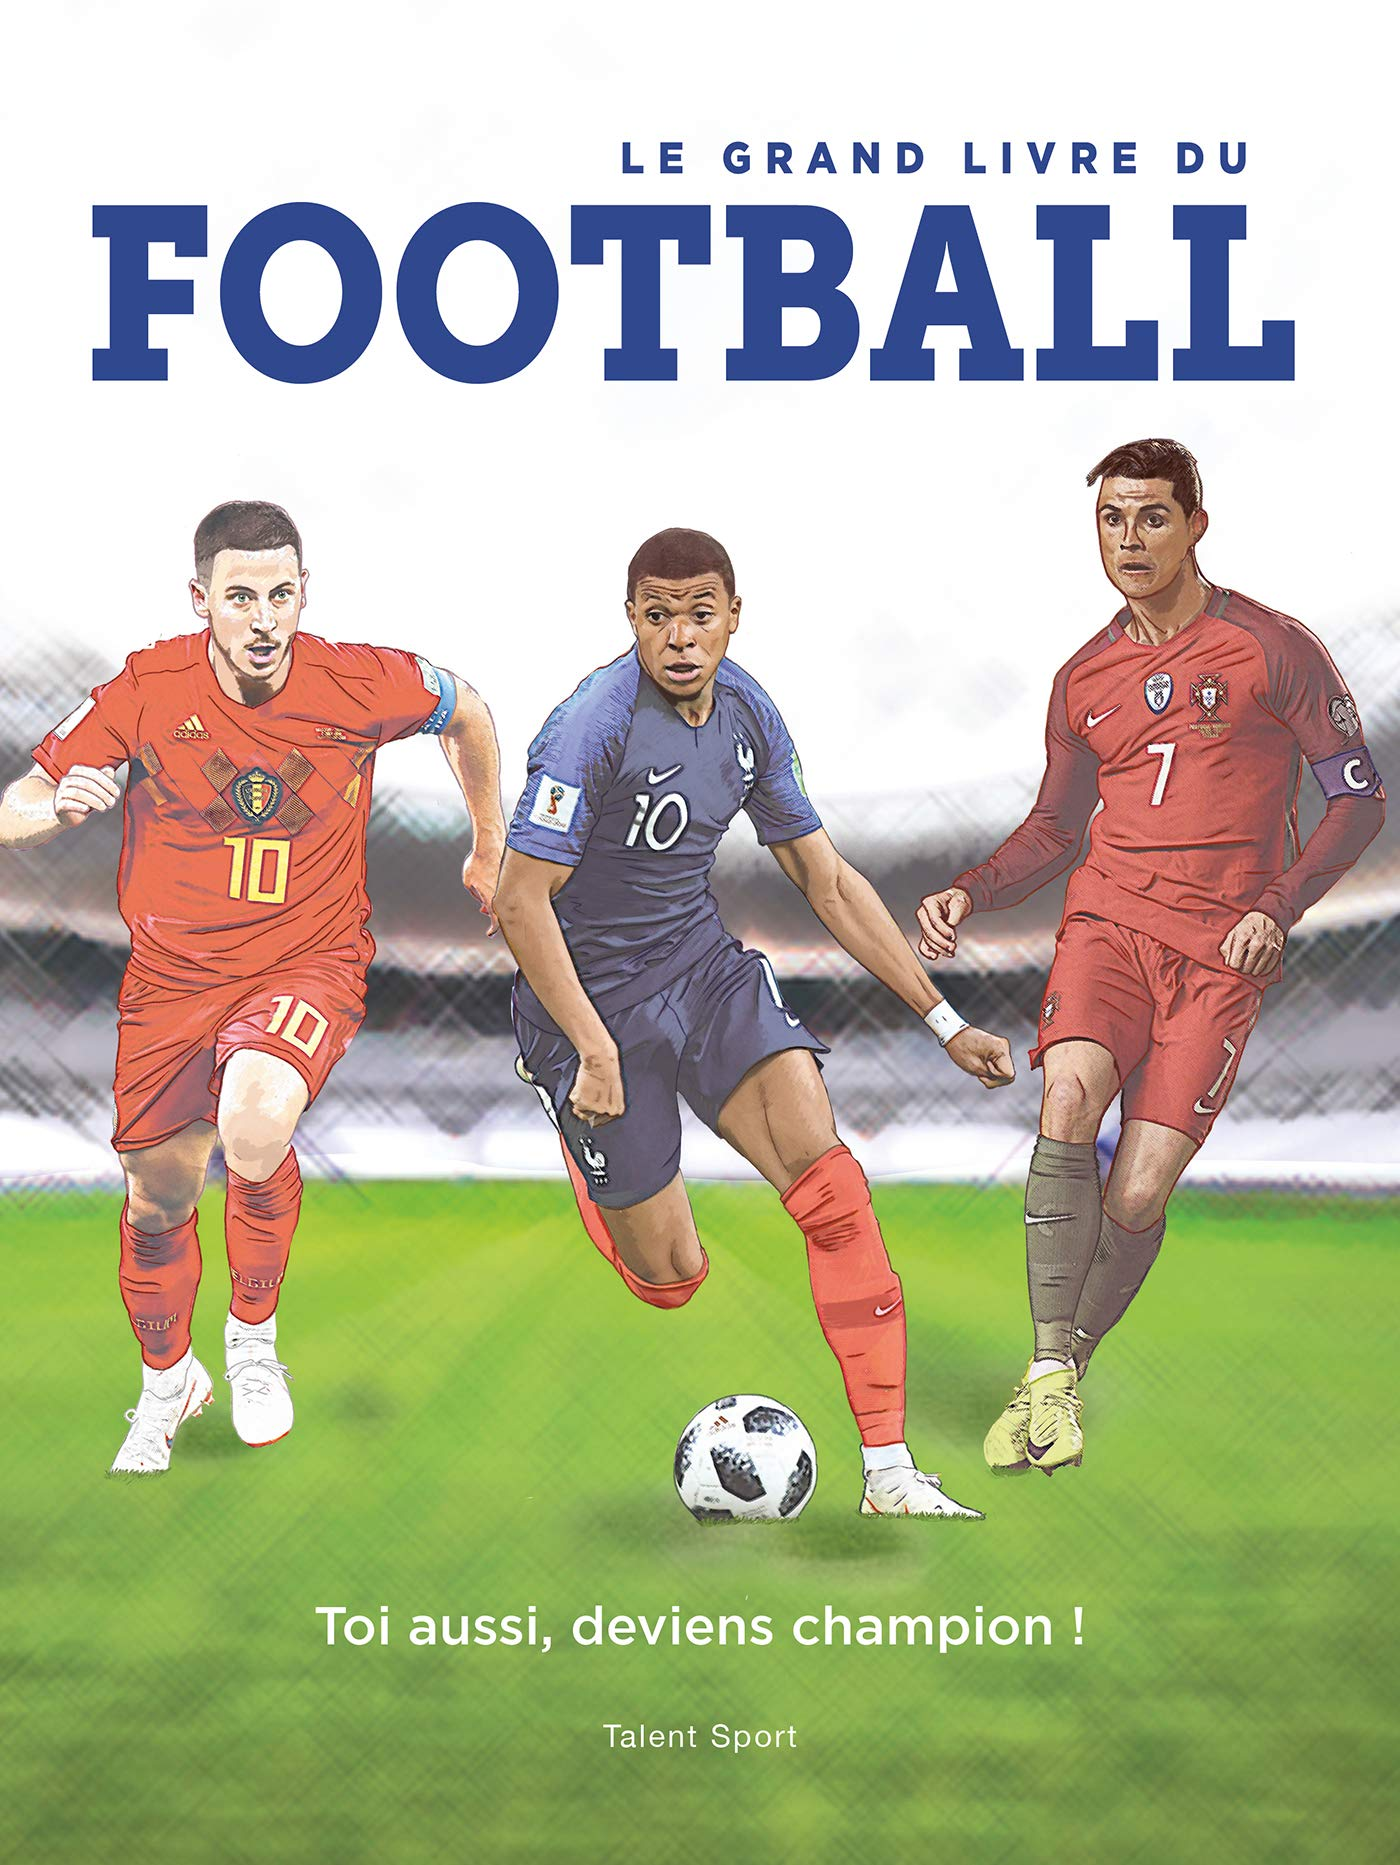 Le Grand Livre Du Football Collectif 9782378150389 Amazon